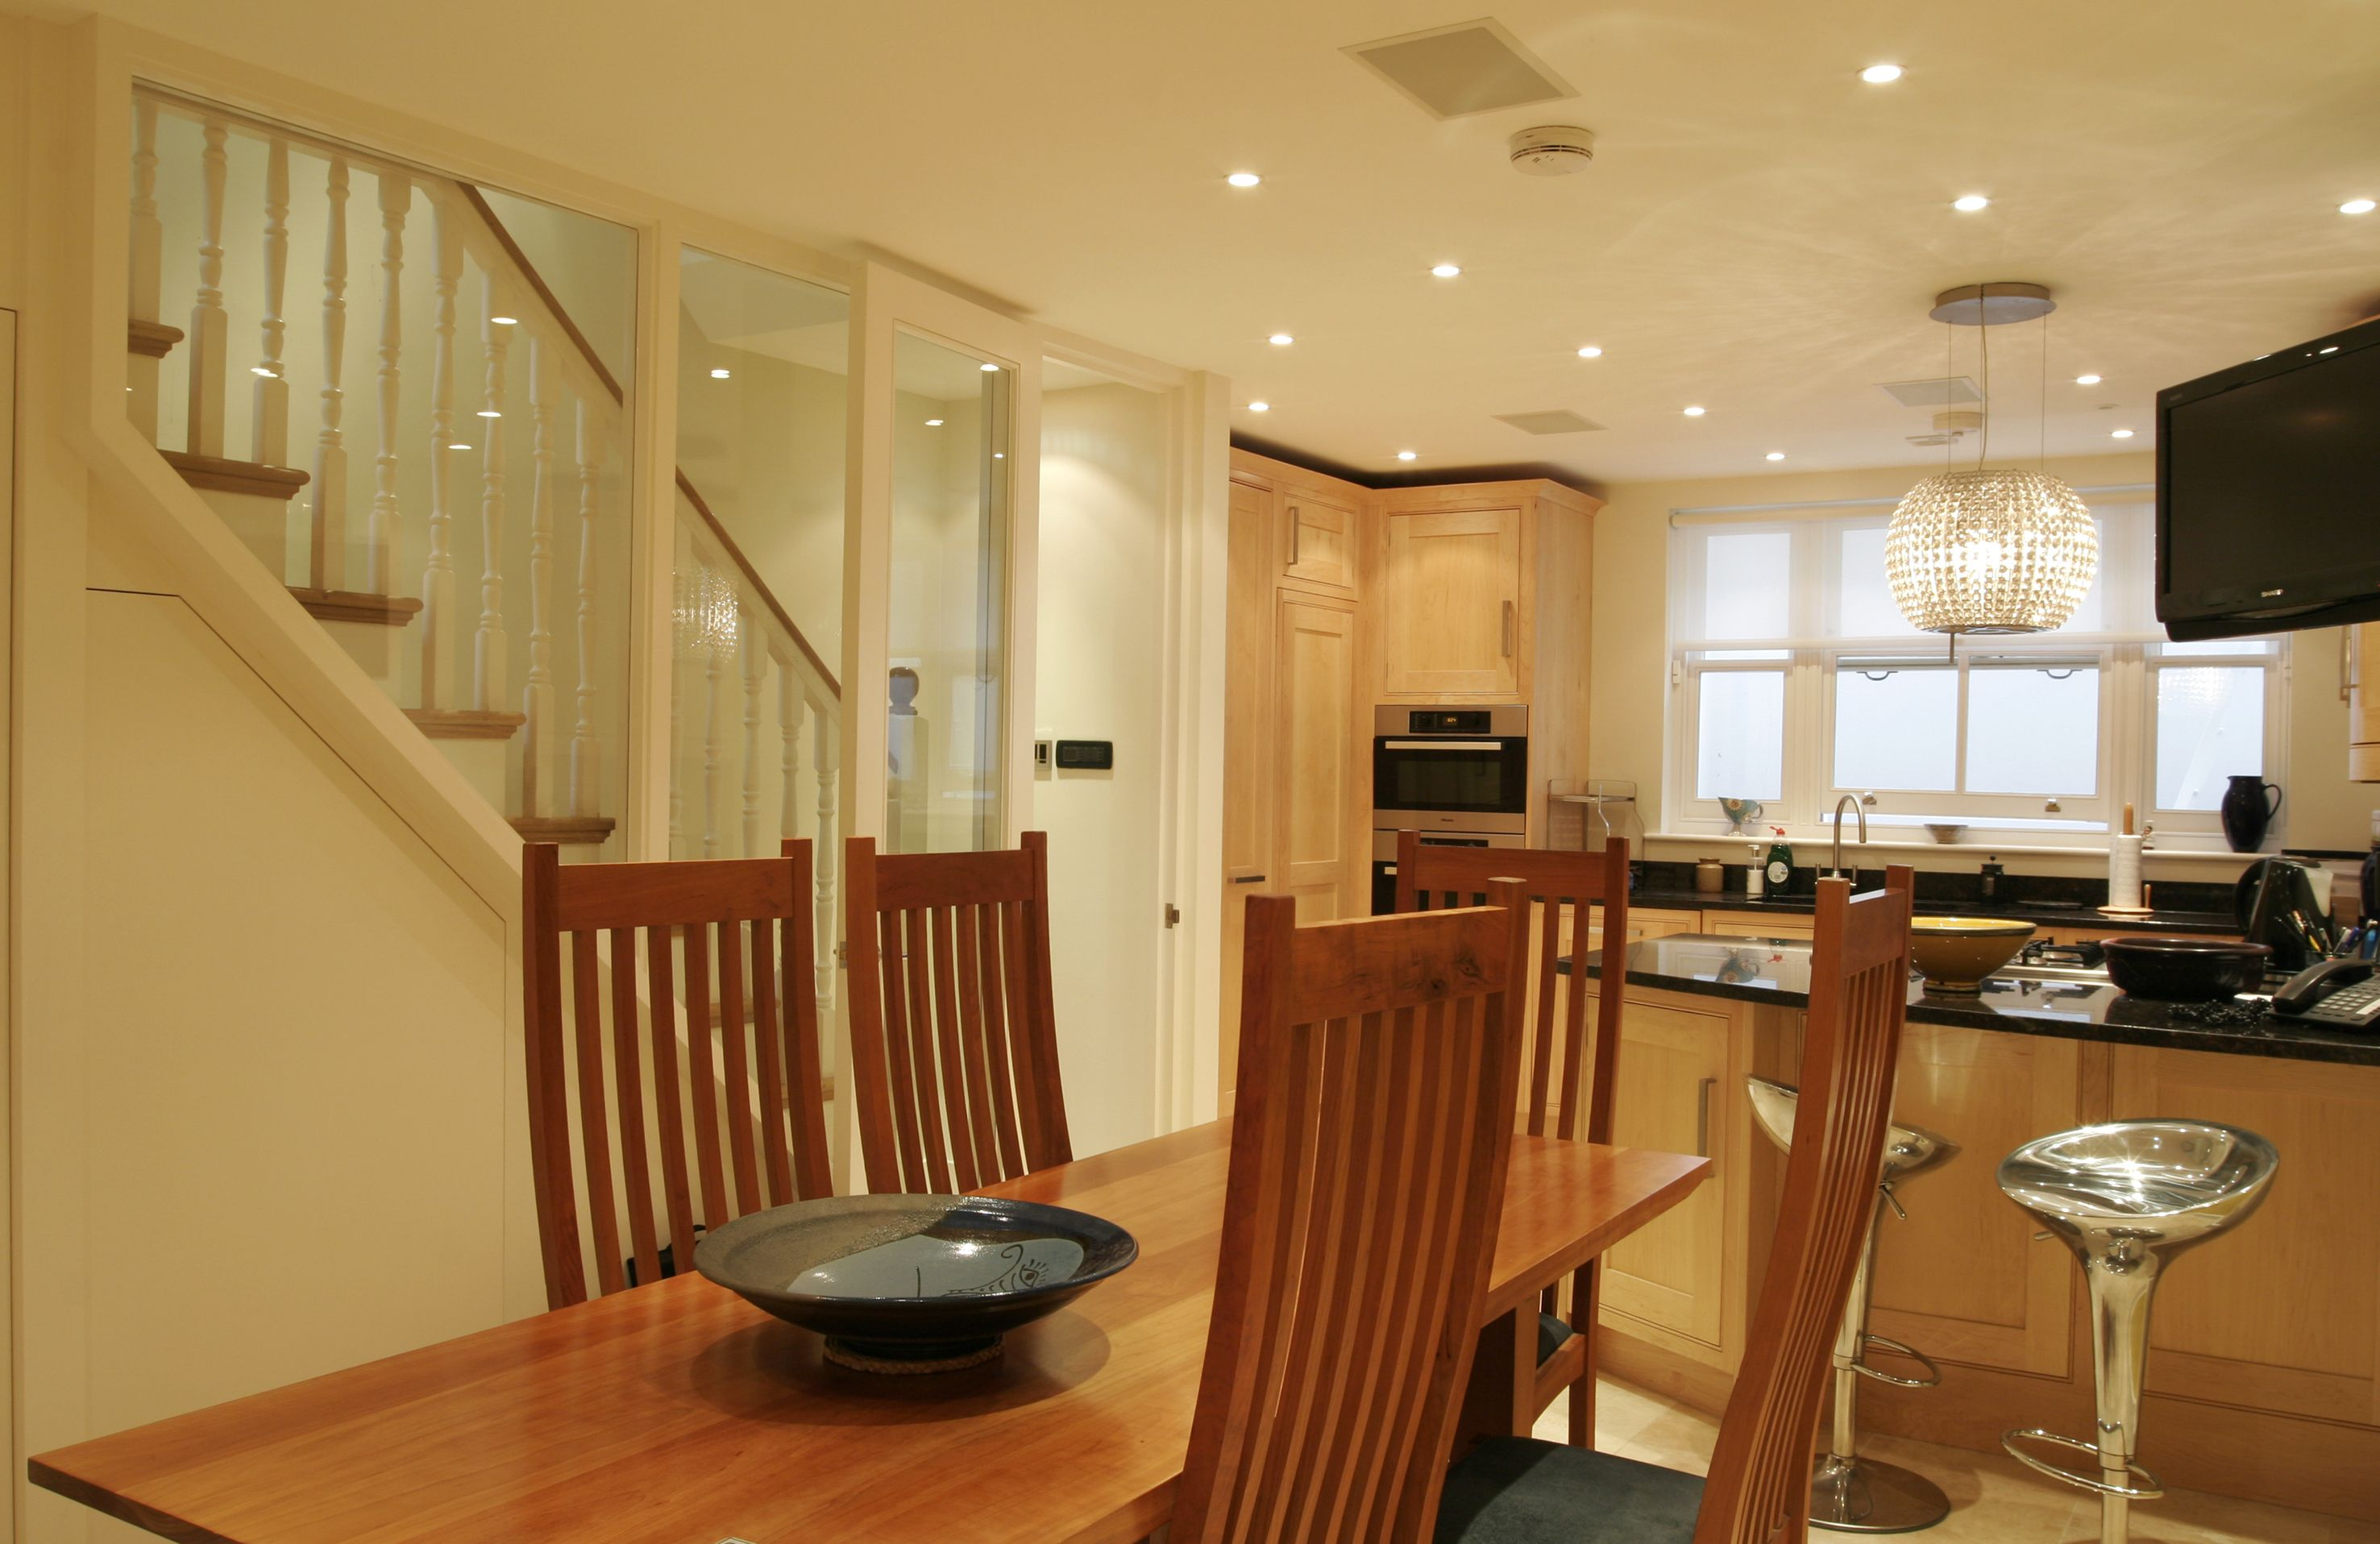 Kitchen, Dining Room And Wine Cellar Constructed By London Basement